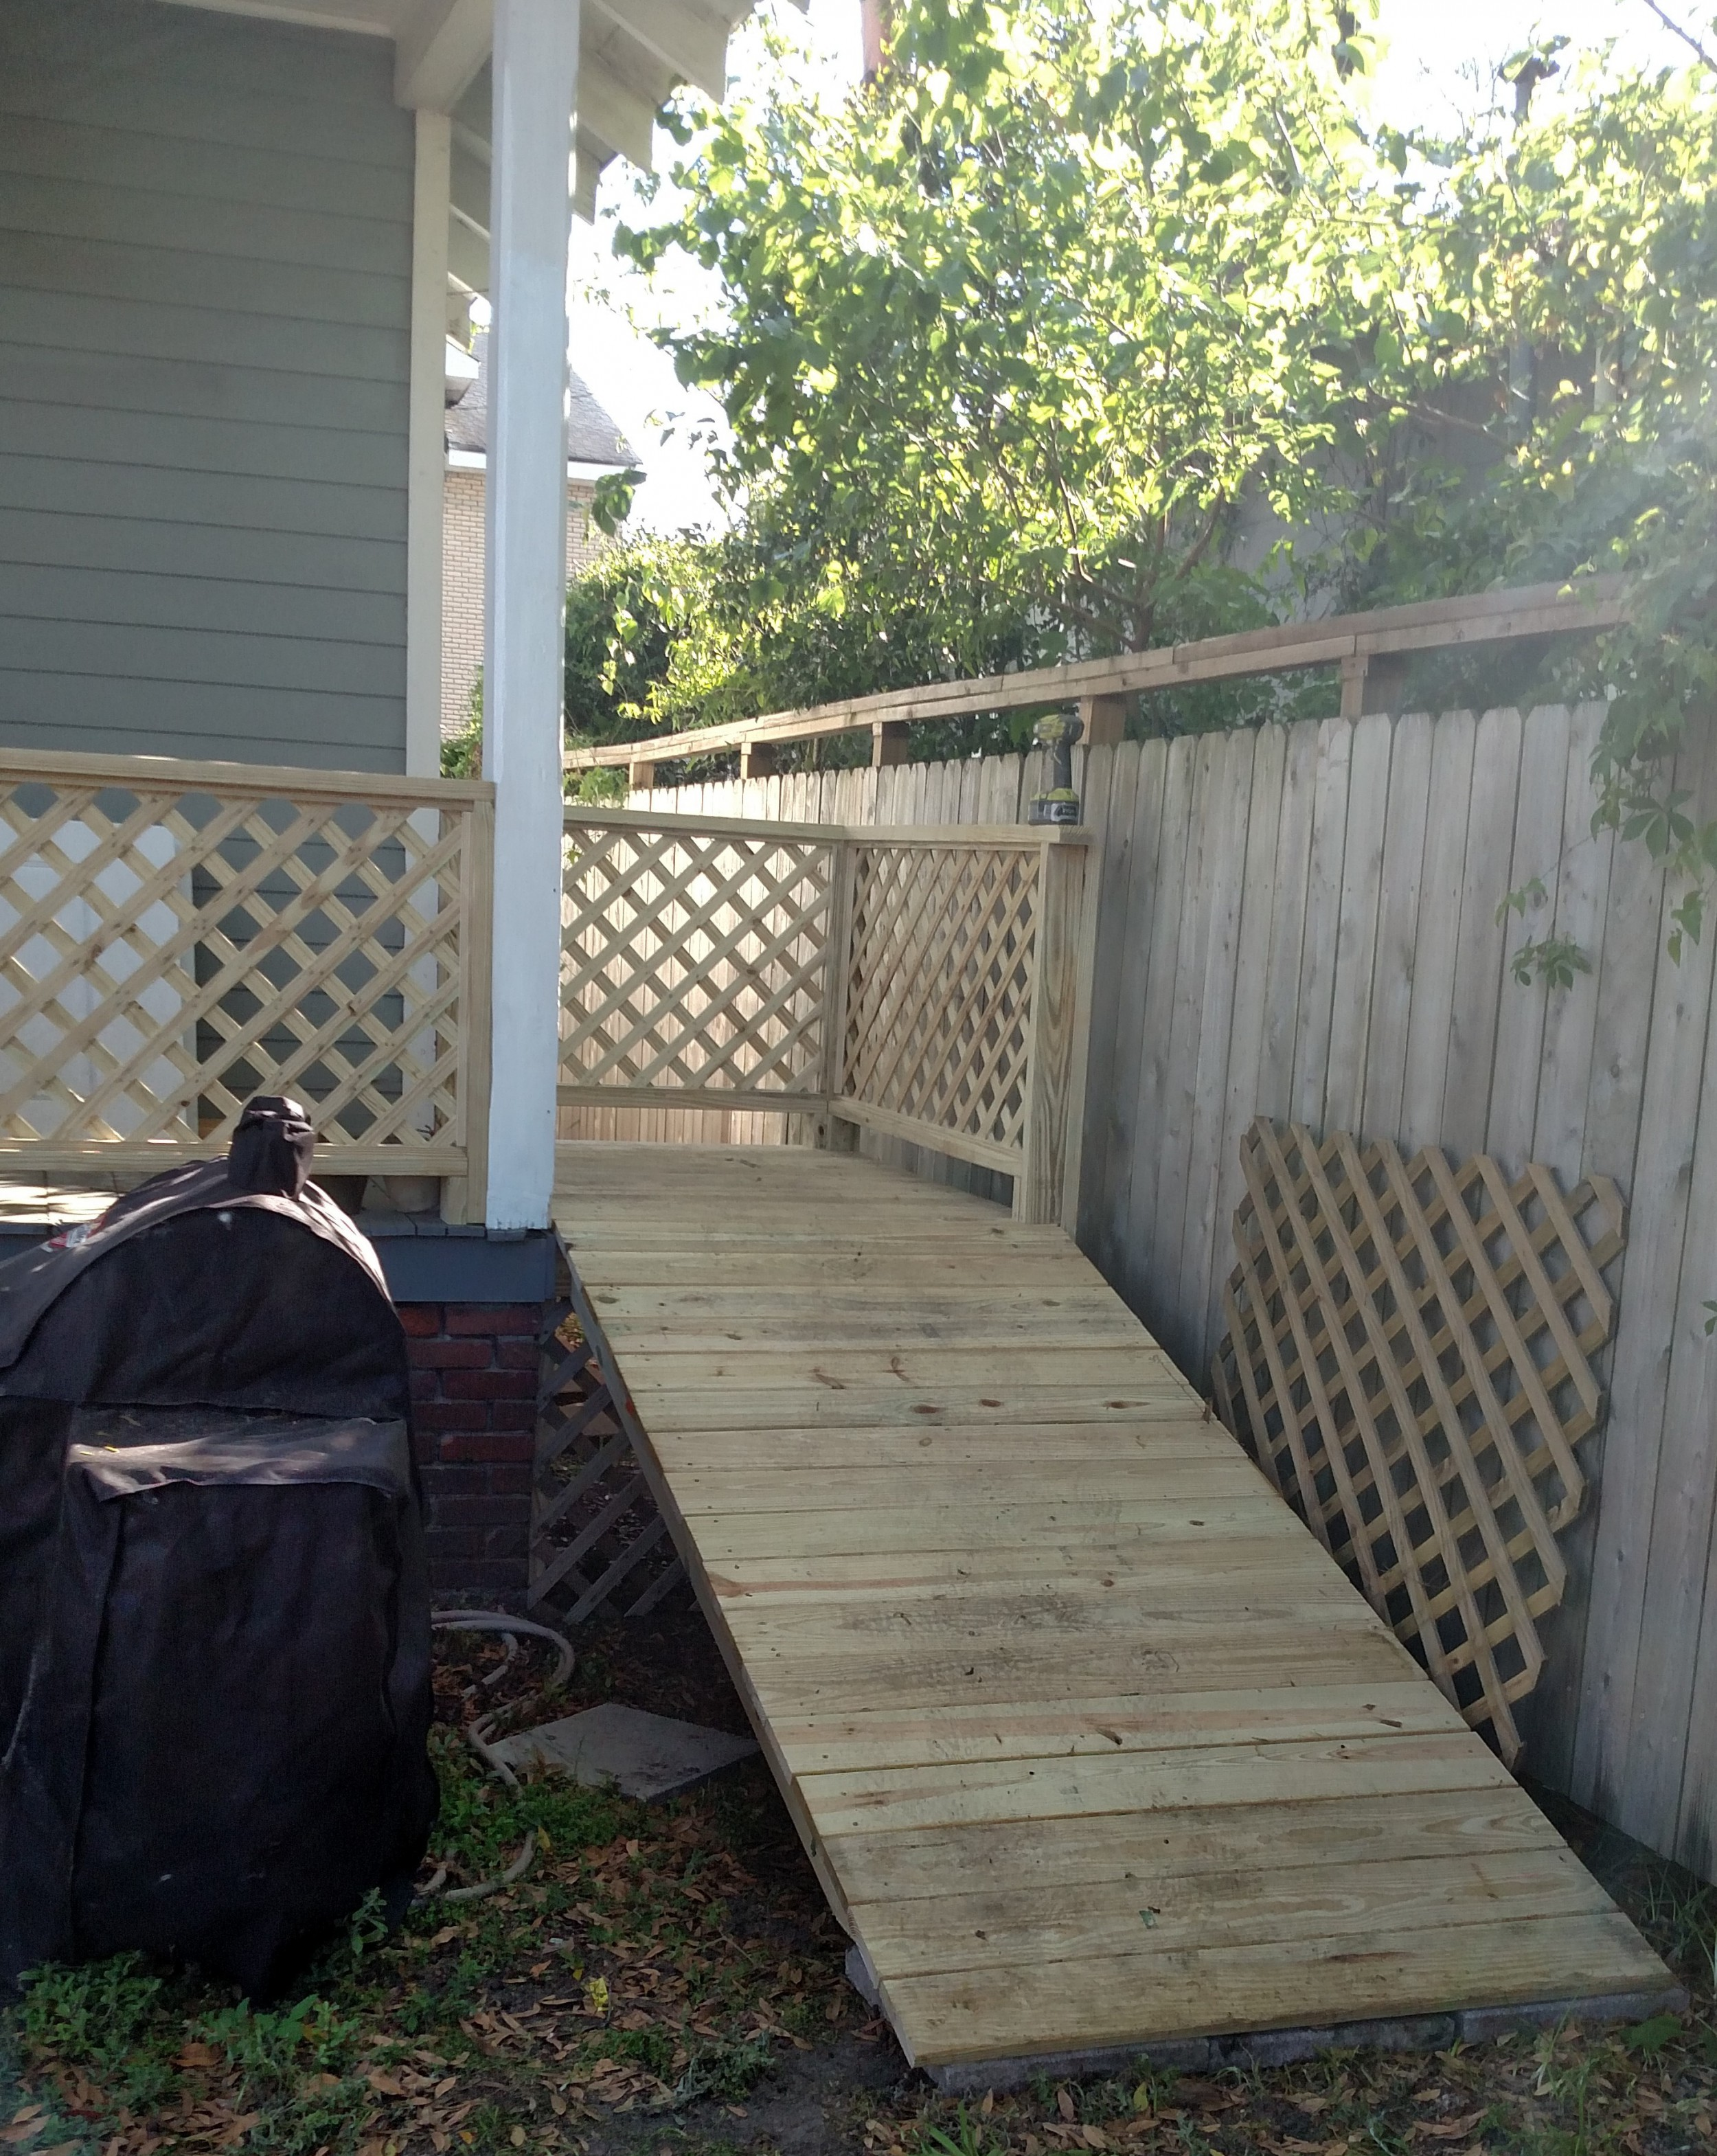 Banister and ramp for elderly dog.